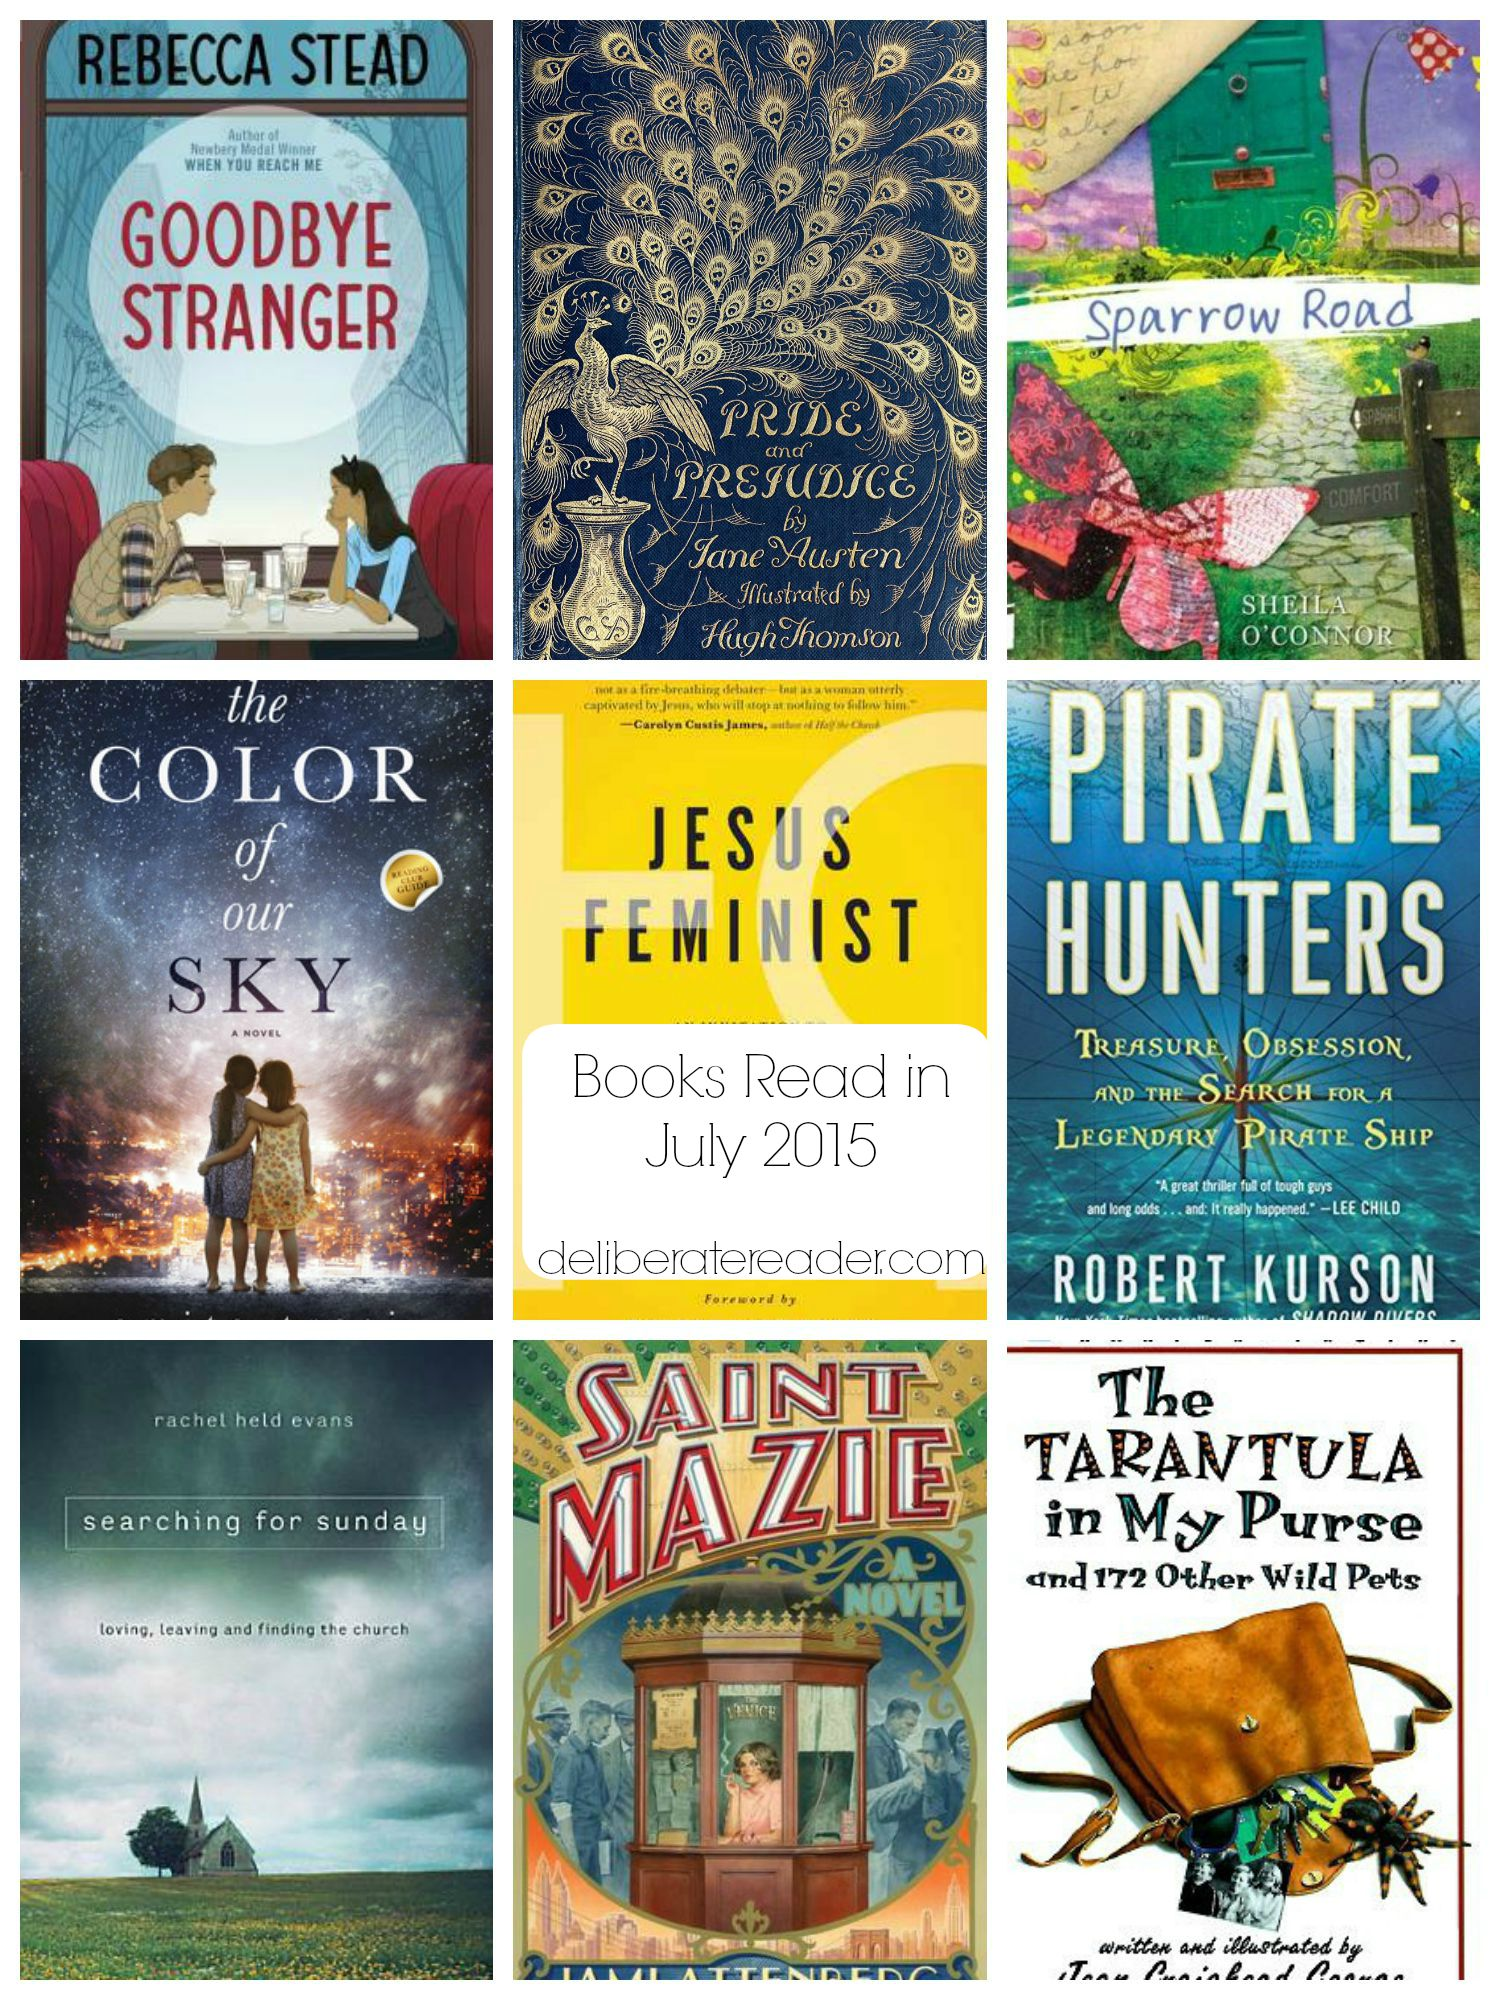 Books Read in July 2015